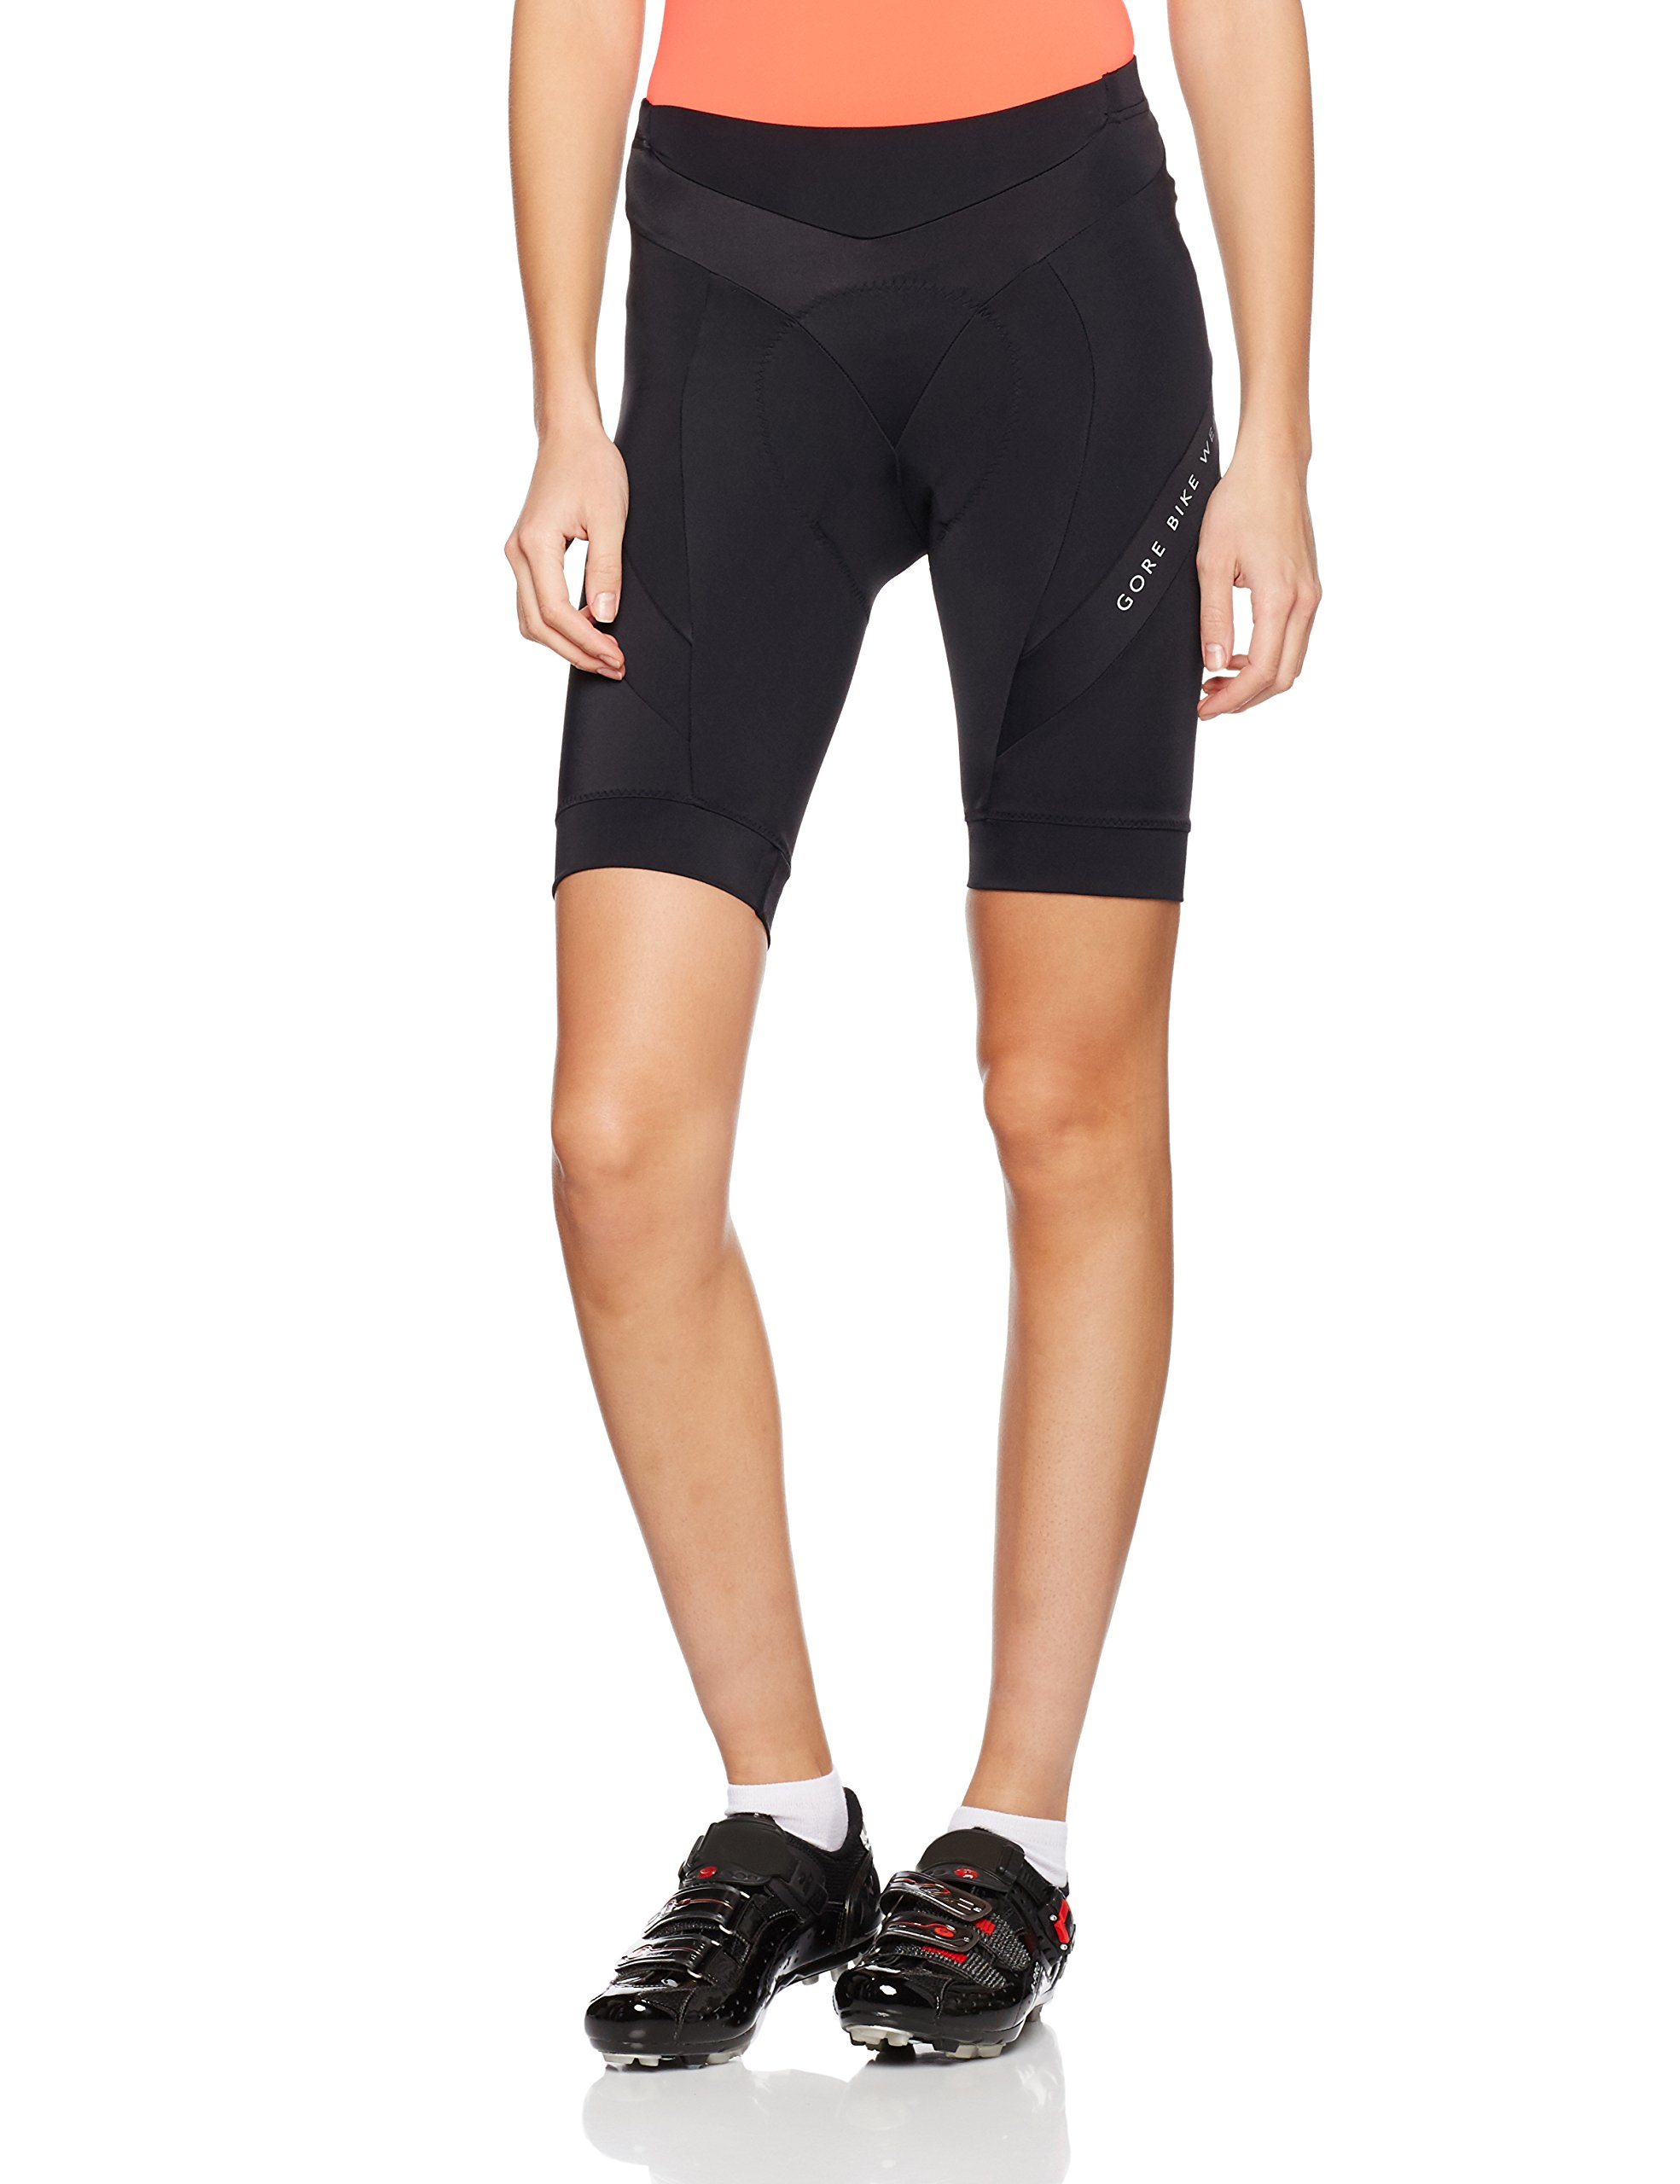 017f7aabac4 Women s Cycling Bottoms